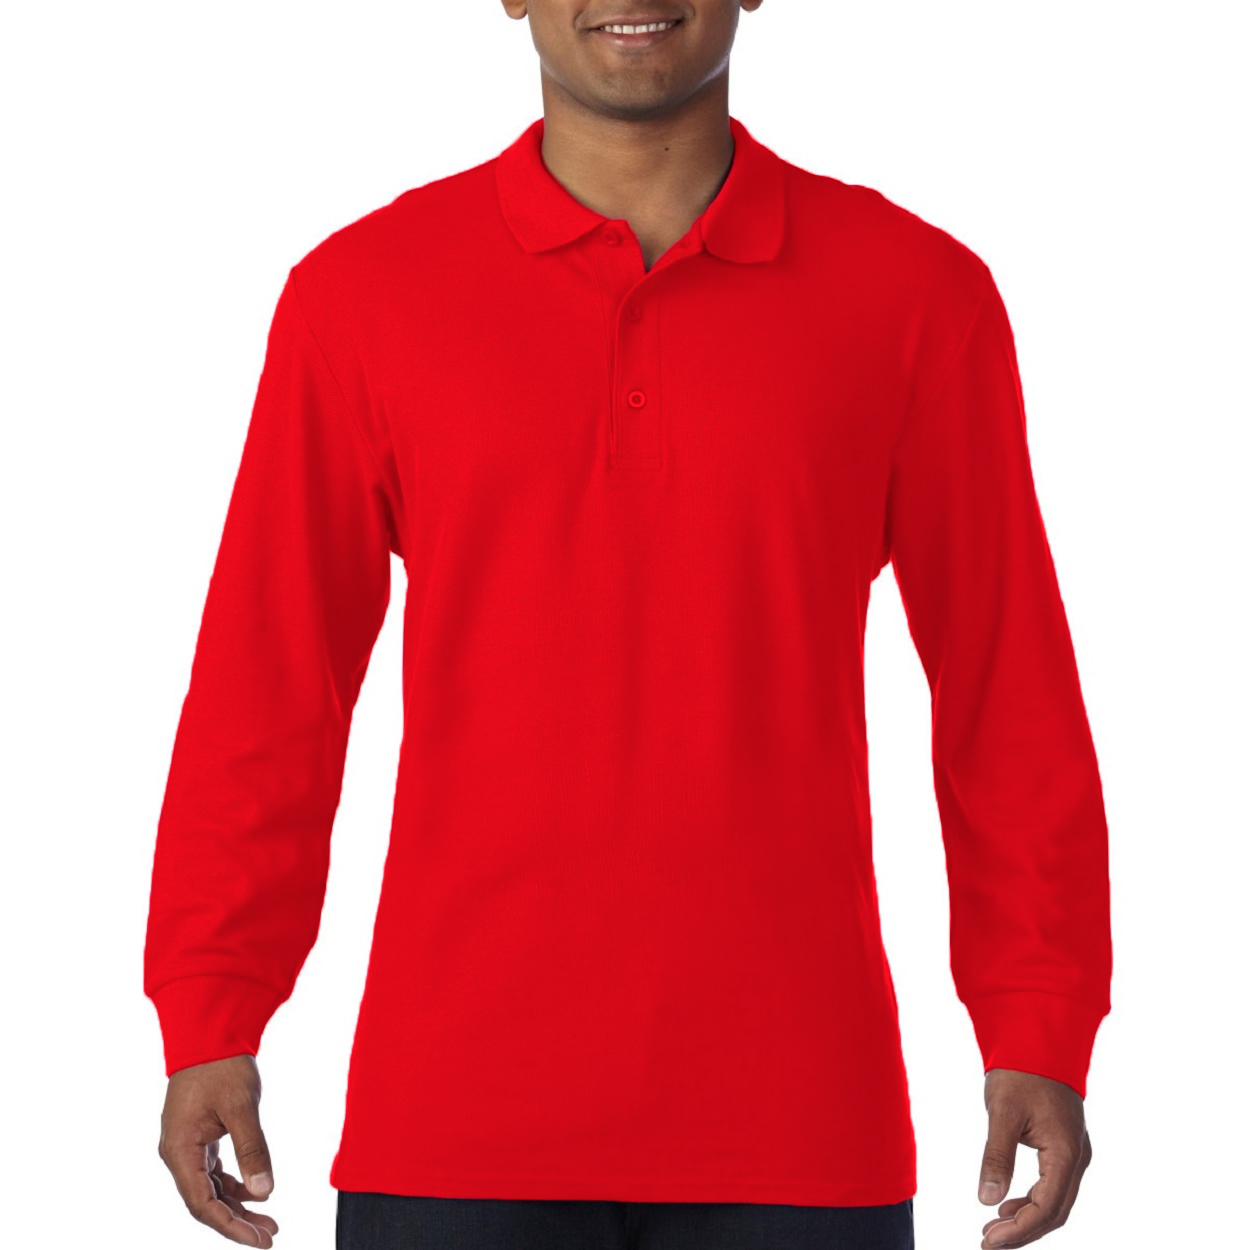 Gildan-Mens-Long-Sleeve-Double-Pique-Cotton-Polo-Shirt-BC3485 thumbnail 15